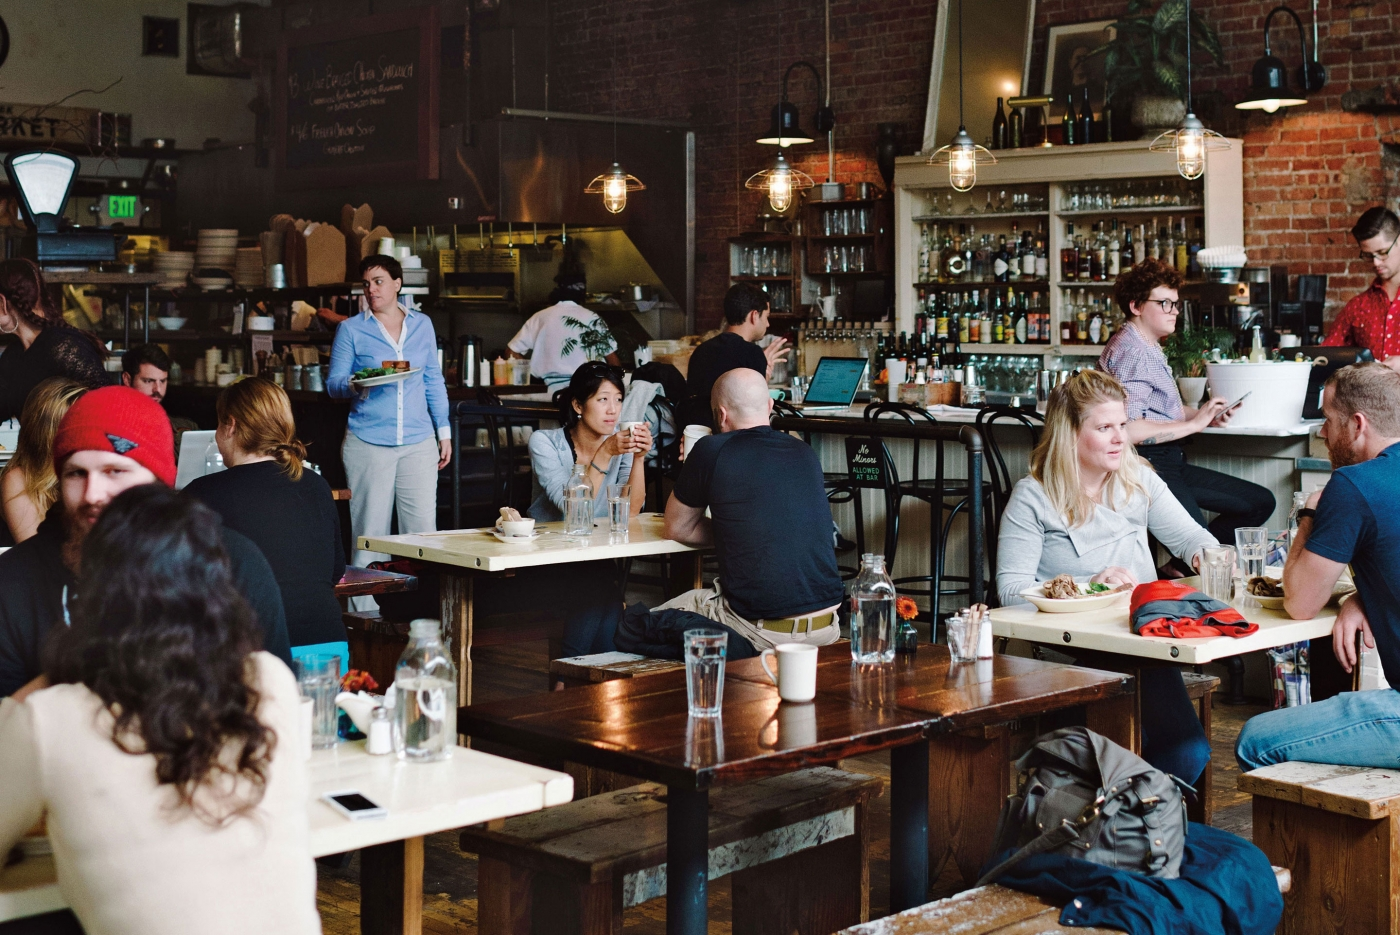 Linda_Derschang_Oddfellows_Cafe_Bar-horizontal